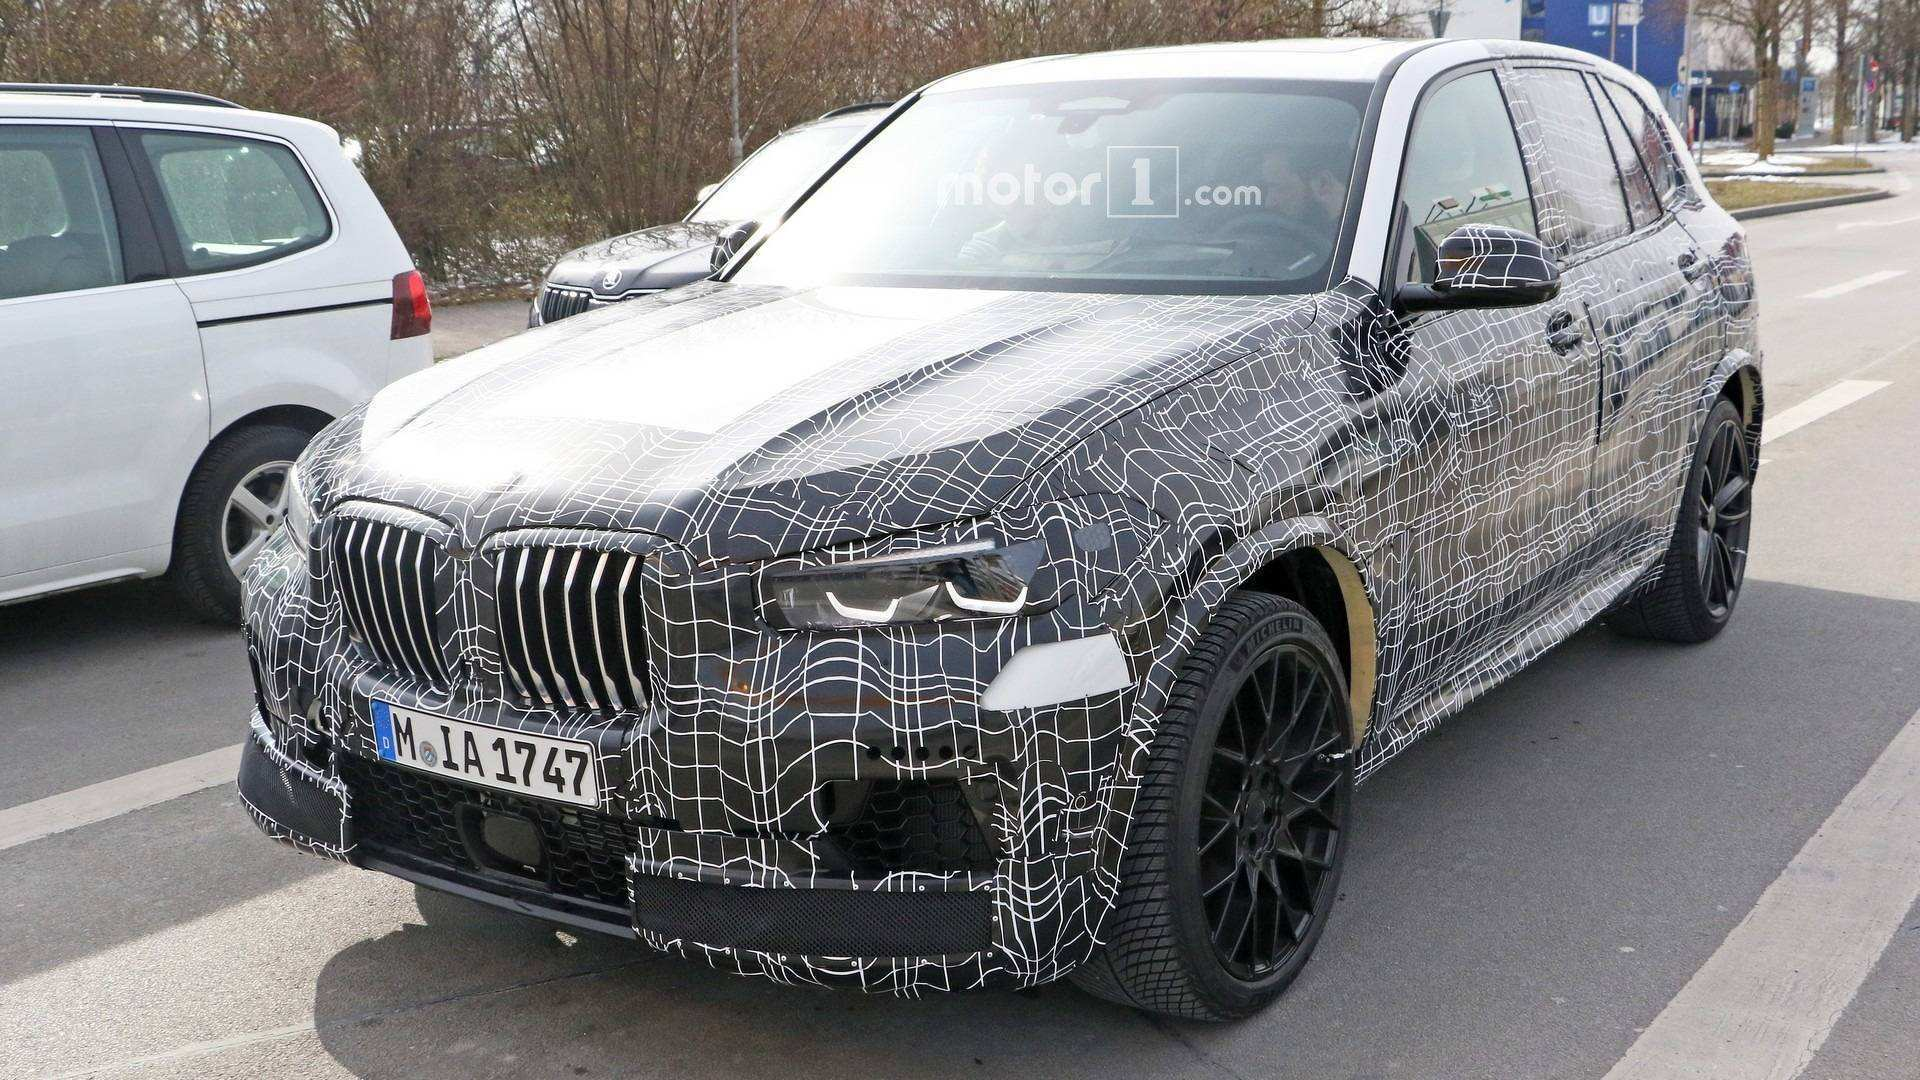 82 Gallery of 2020 Bmw X5 Release Date Release Date for 2020 Bmw X5 Release Date